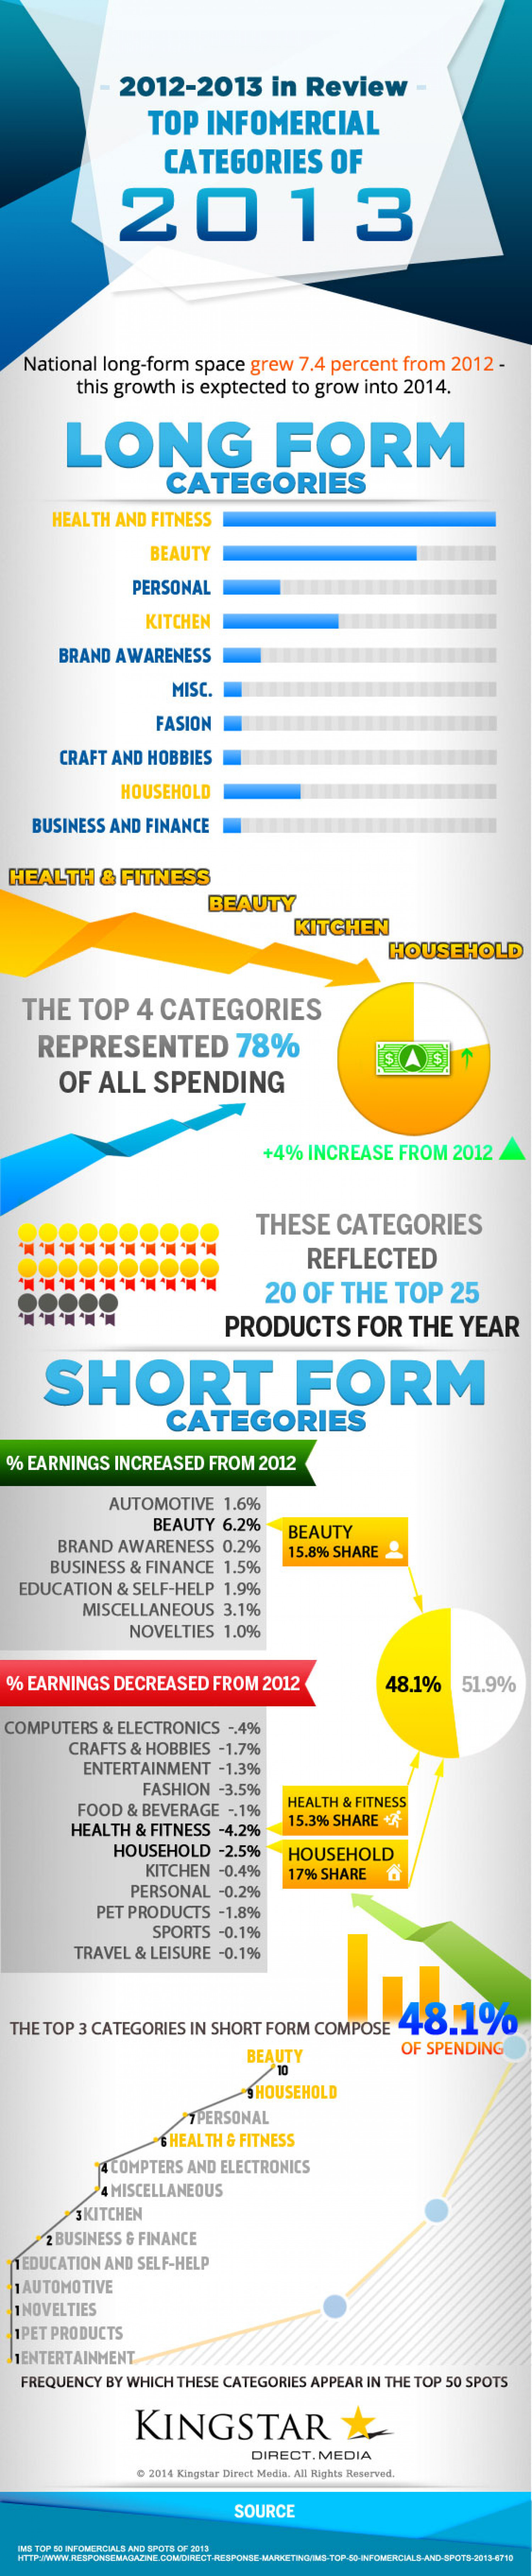 Top Infomercial Categories of 2013 Infographic